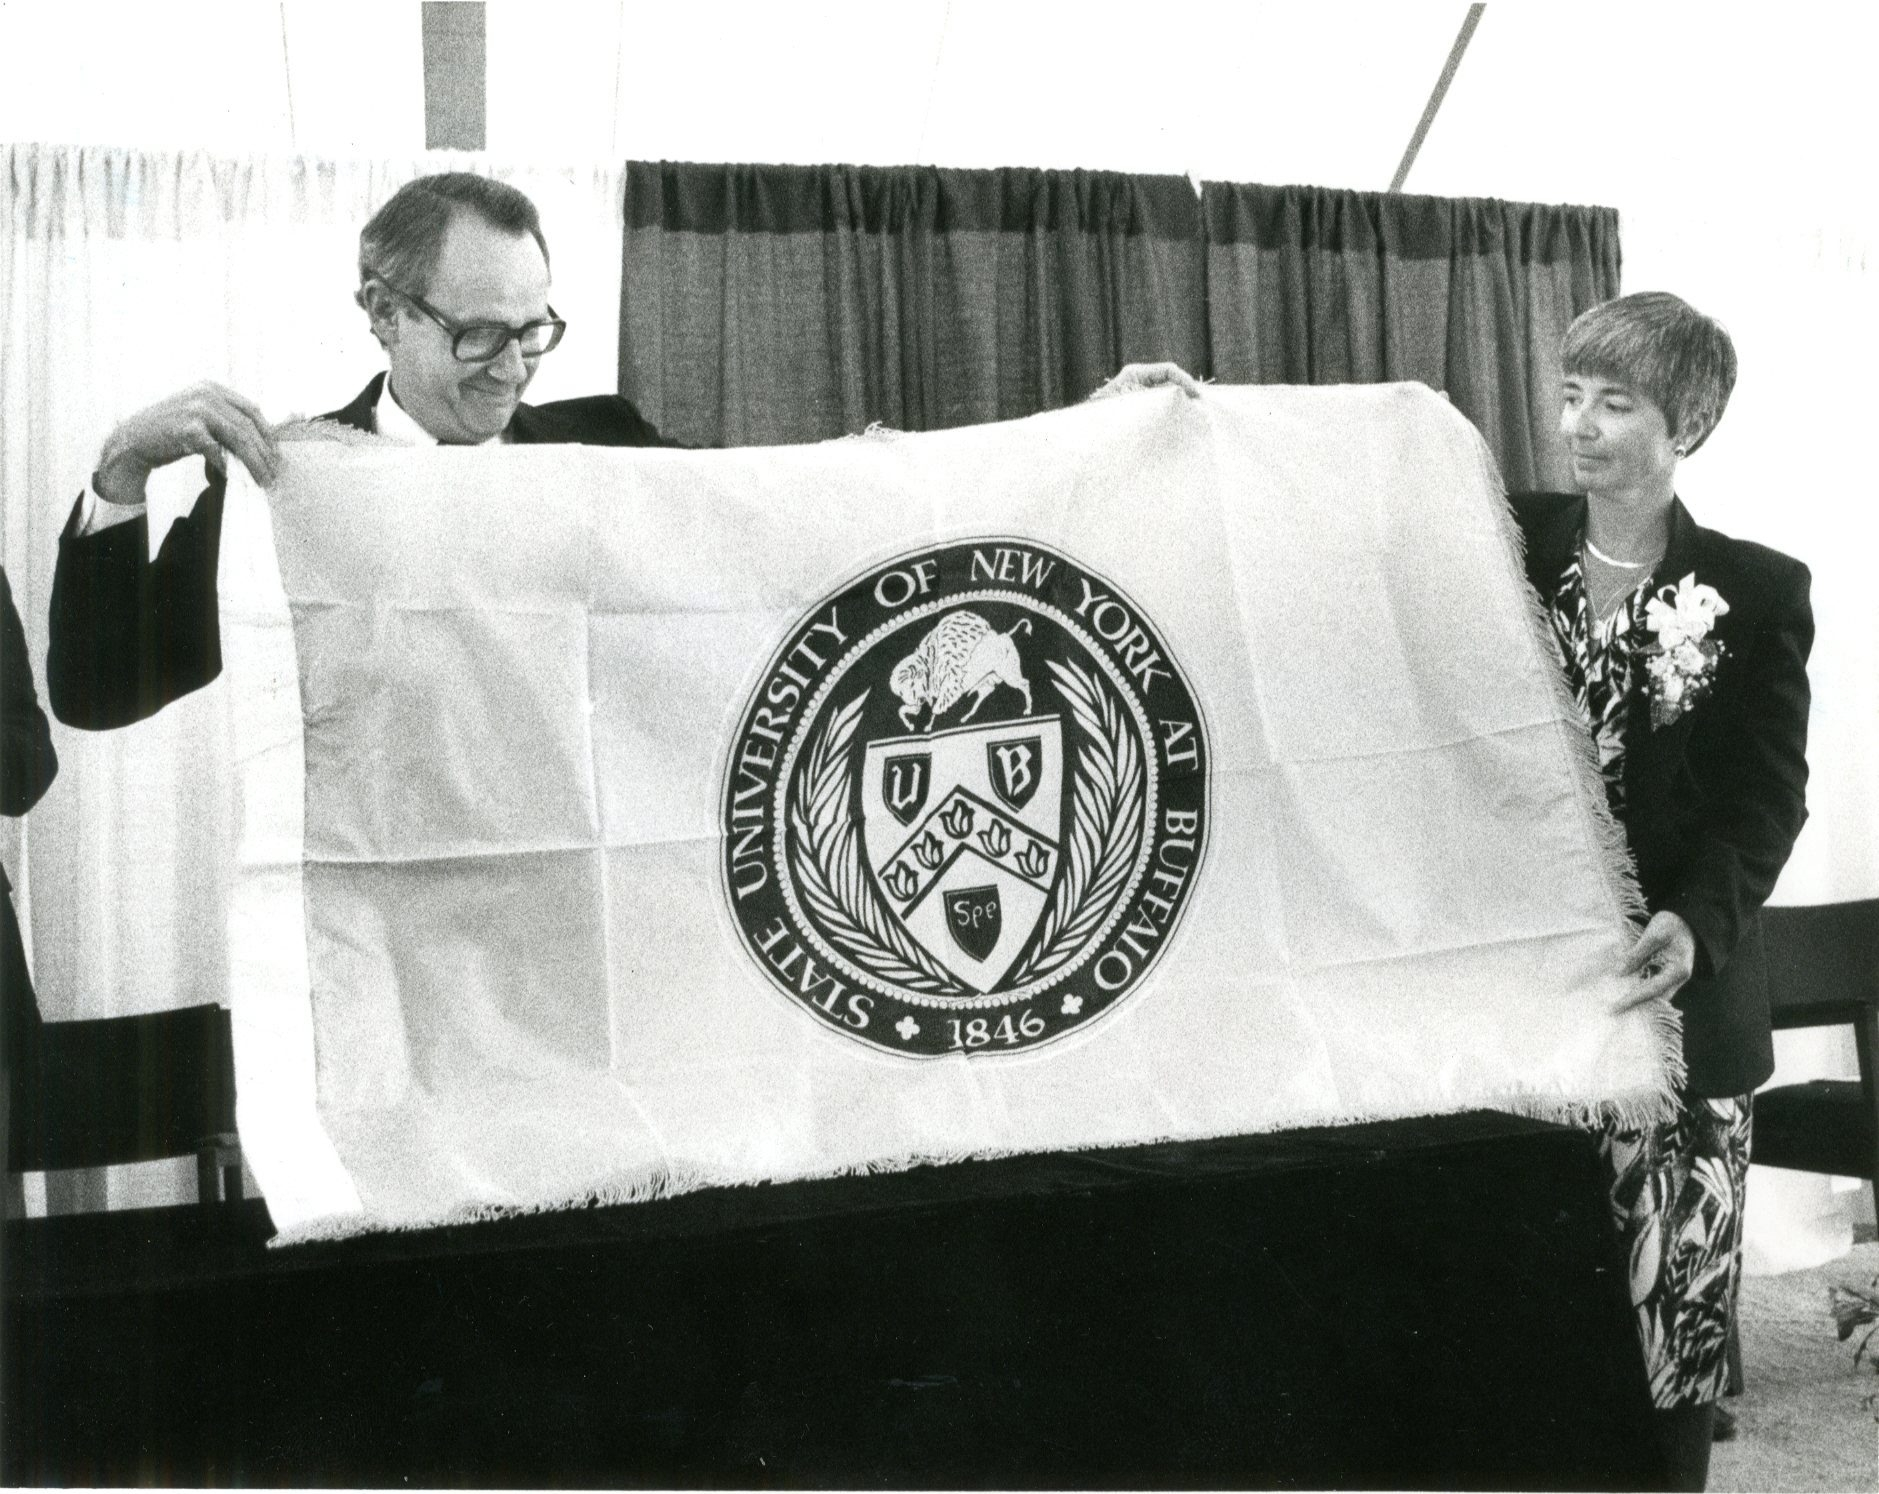 Marcia Jarvis returns the flag her late husband, Gregory, took aboard the ill-fated space shuttle Challenger to UB President Steven B. Sample. Oct. 12, 1987.  (News file photo)